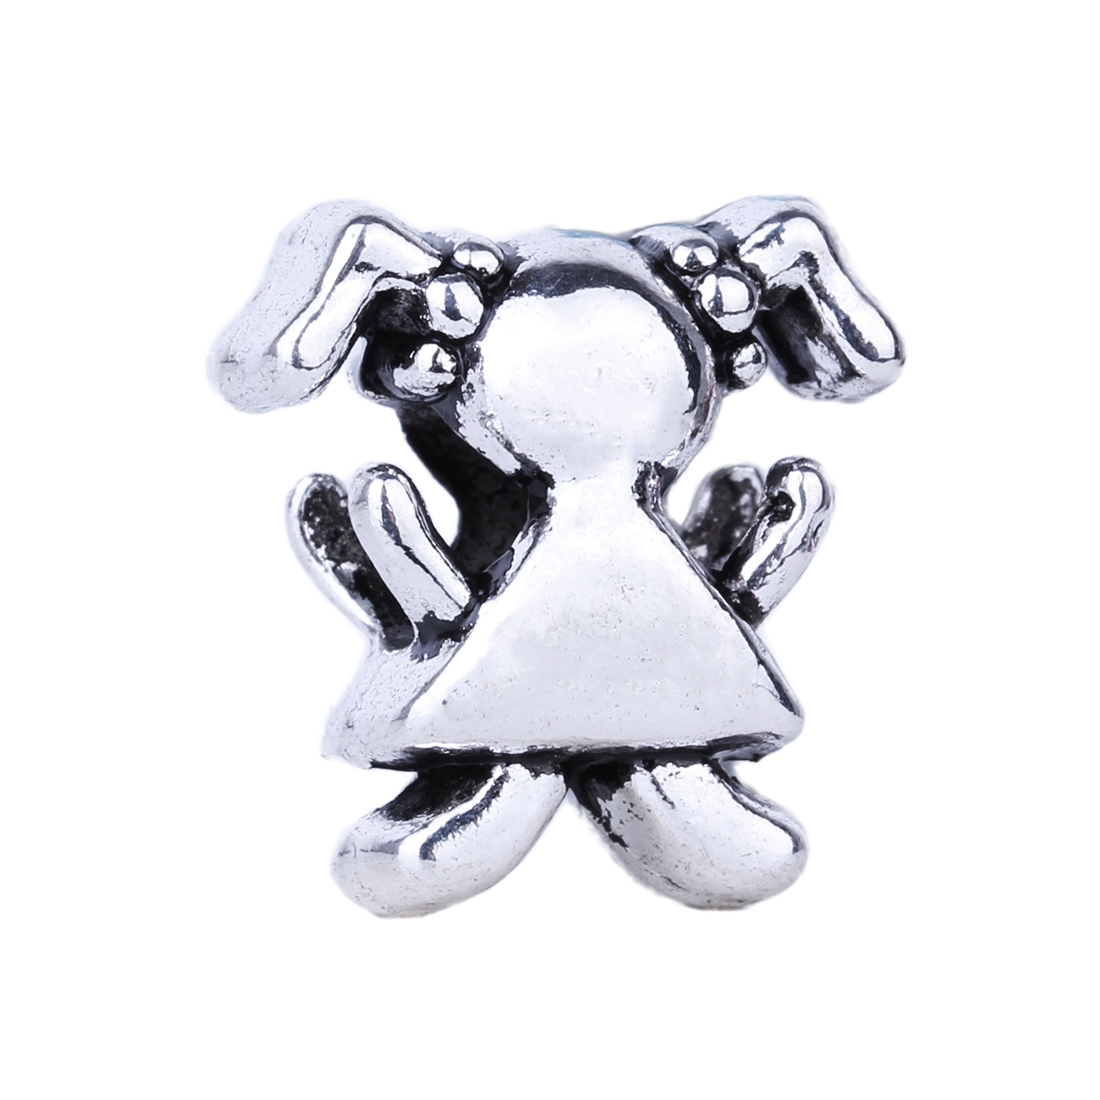 watch more here piece silver high quality girl bead diy